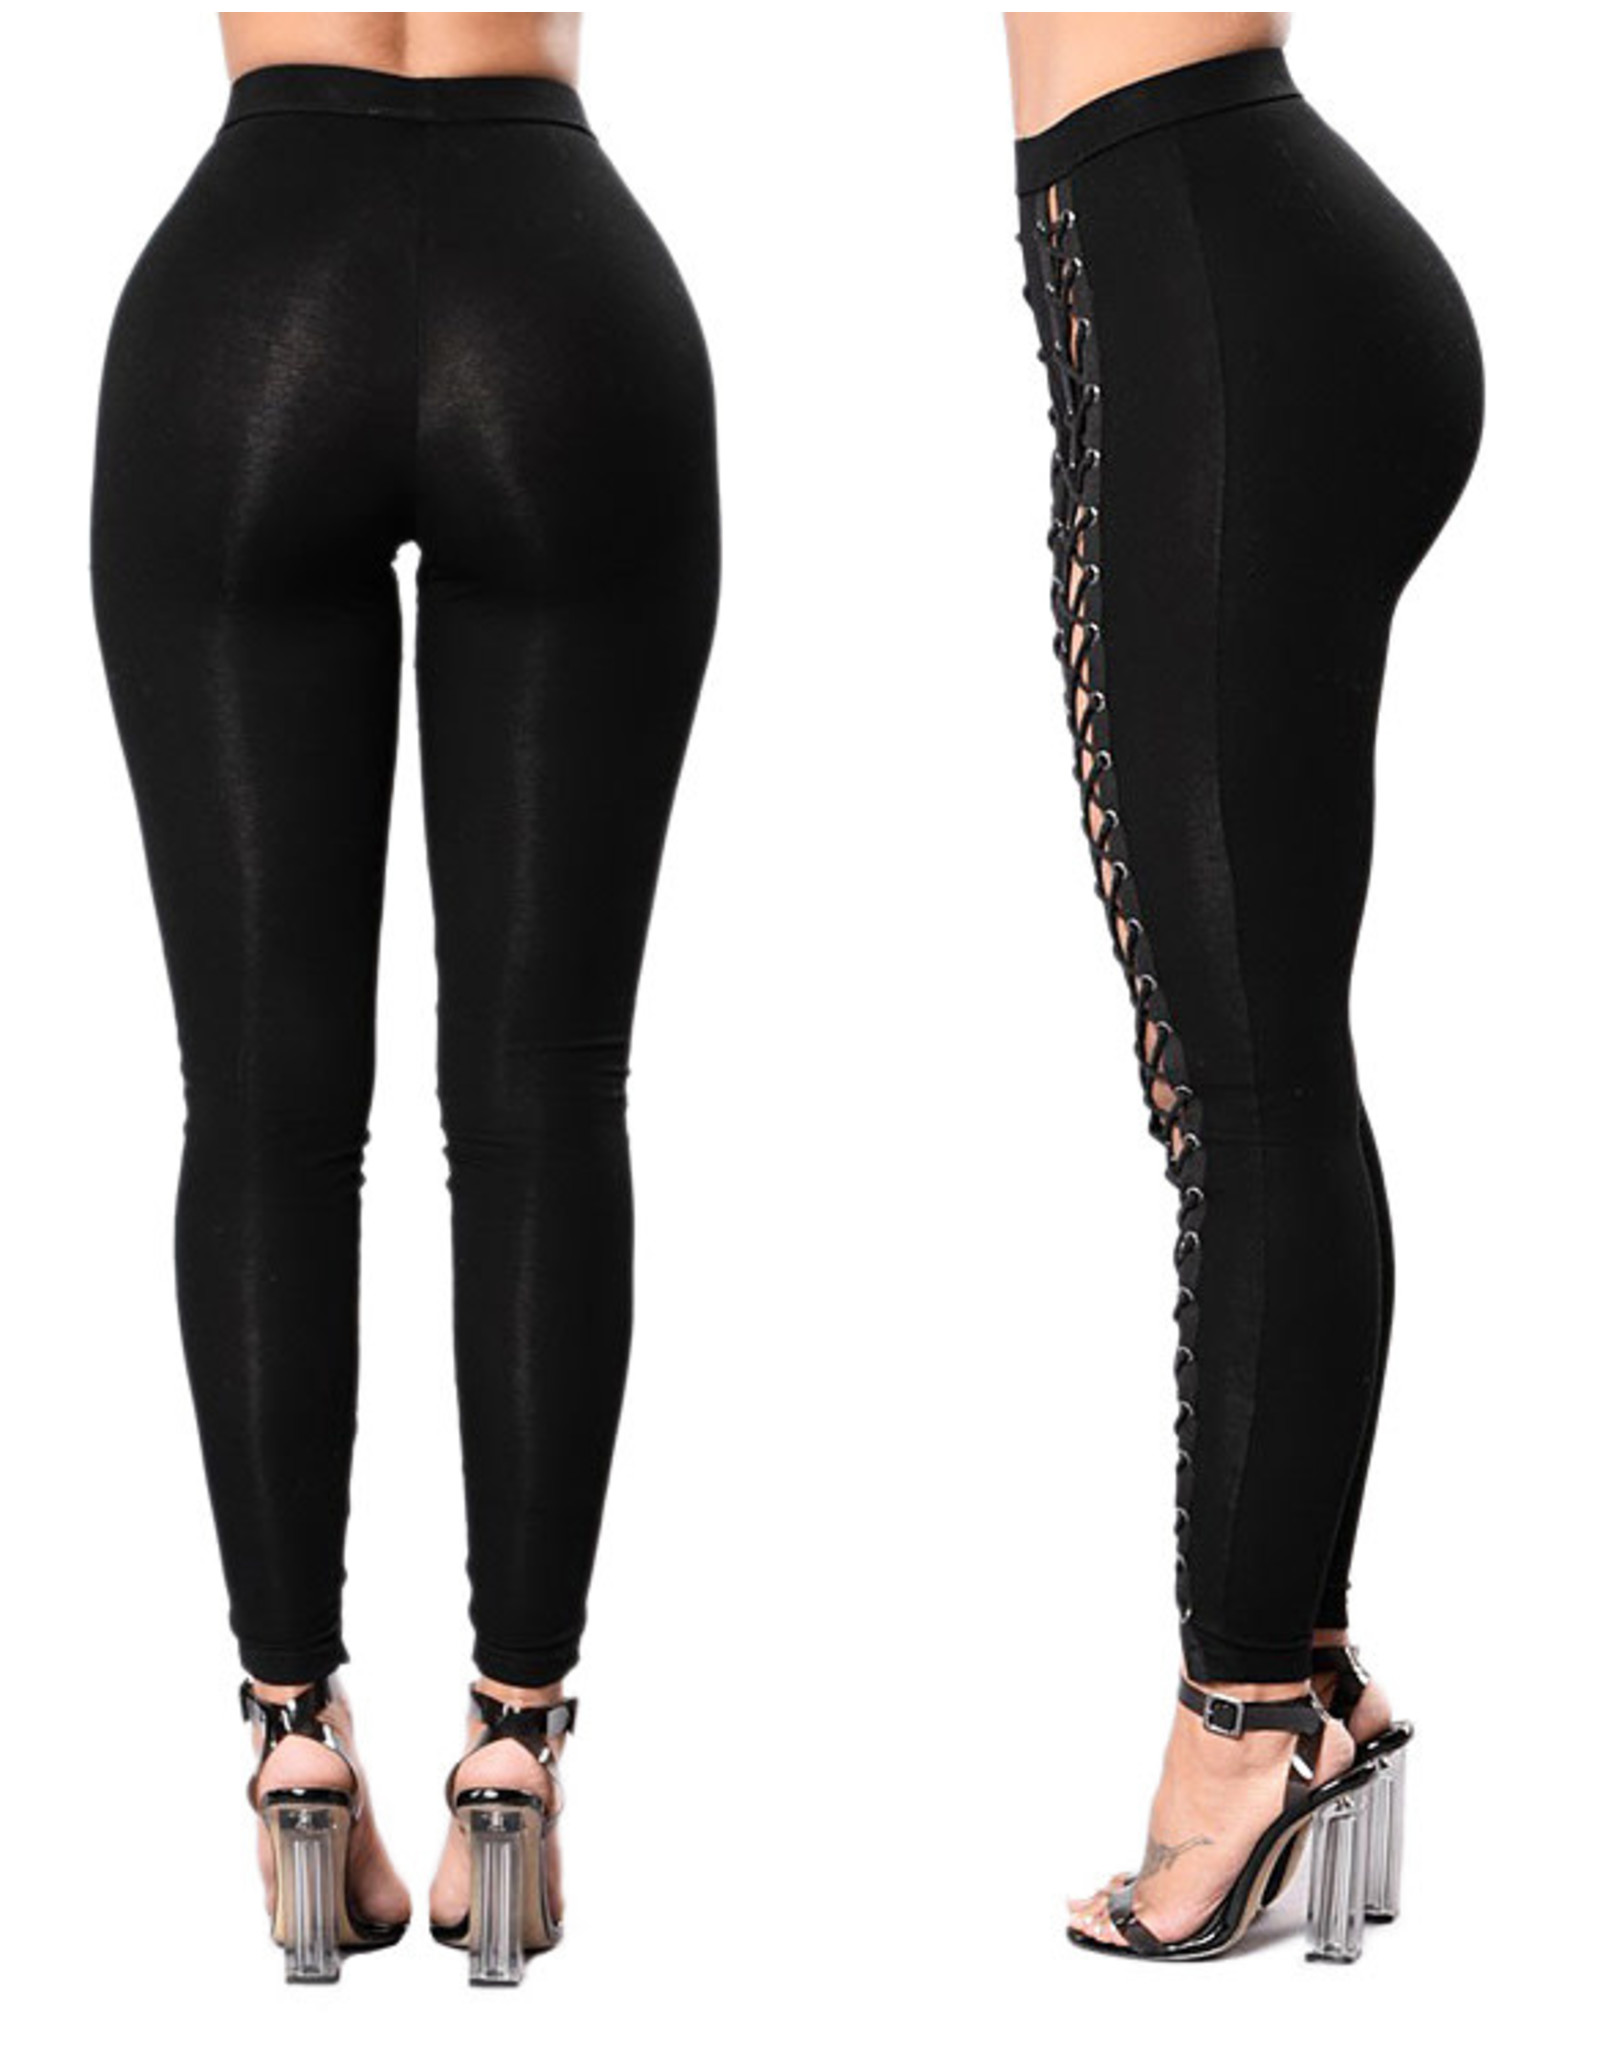 HIGH-RISE LACE-UP FRONT BODYCON LEGGINGS MEDIUM